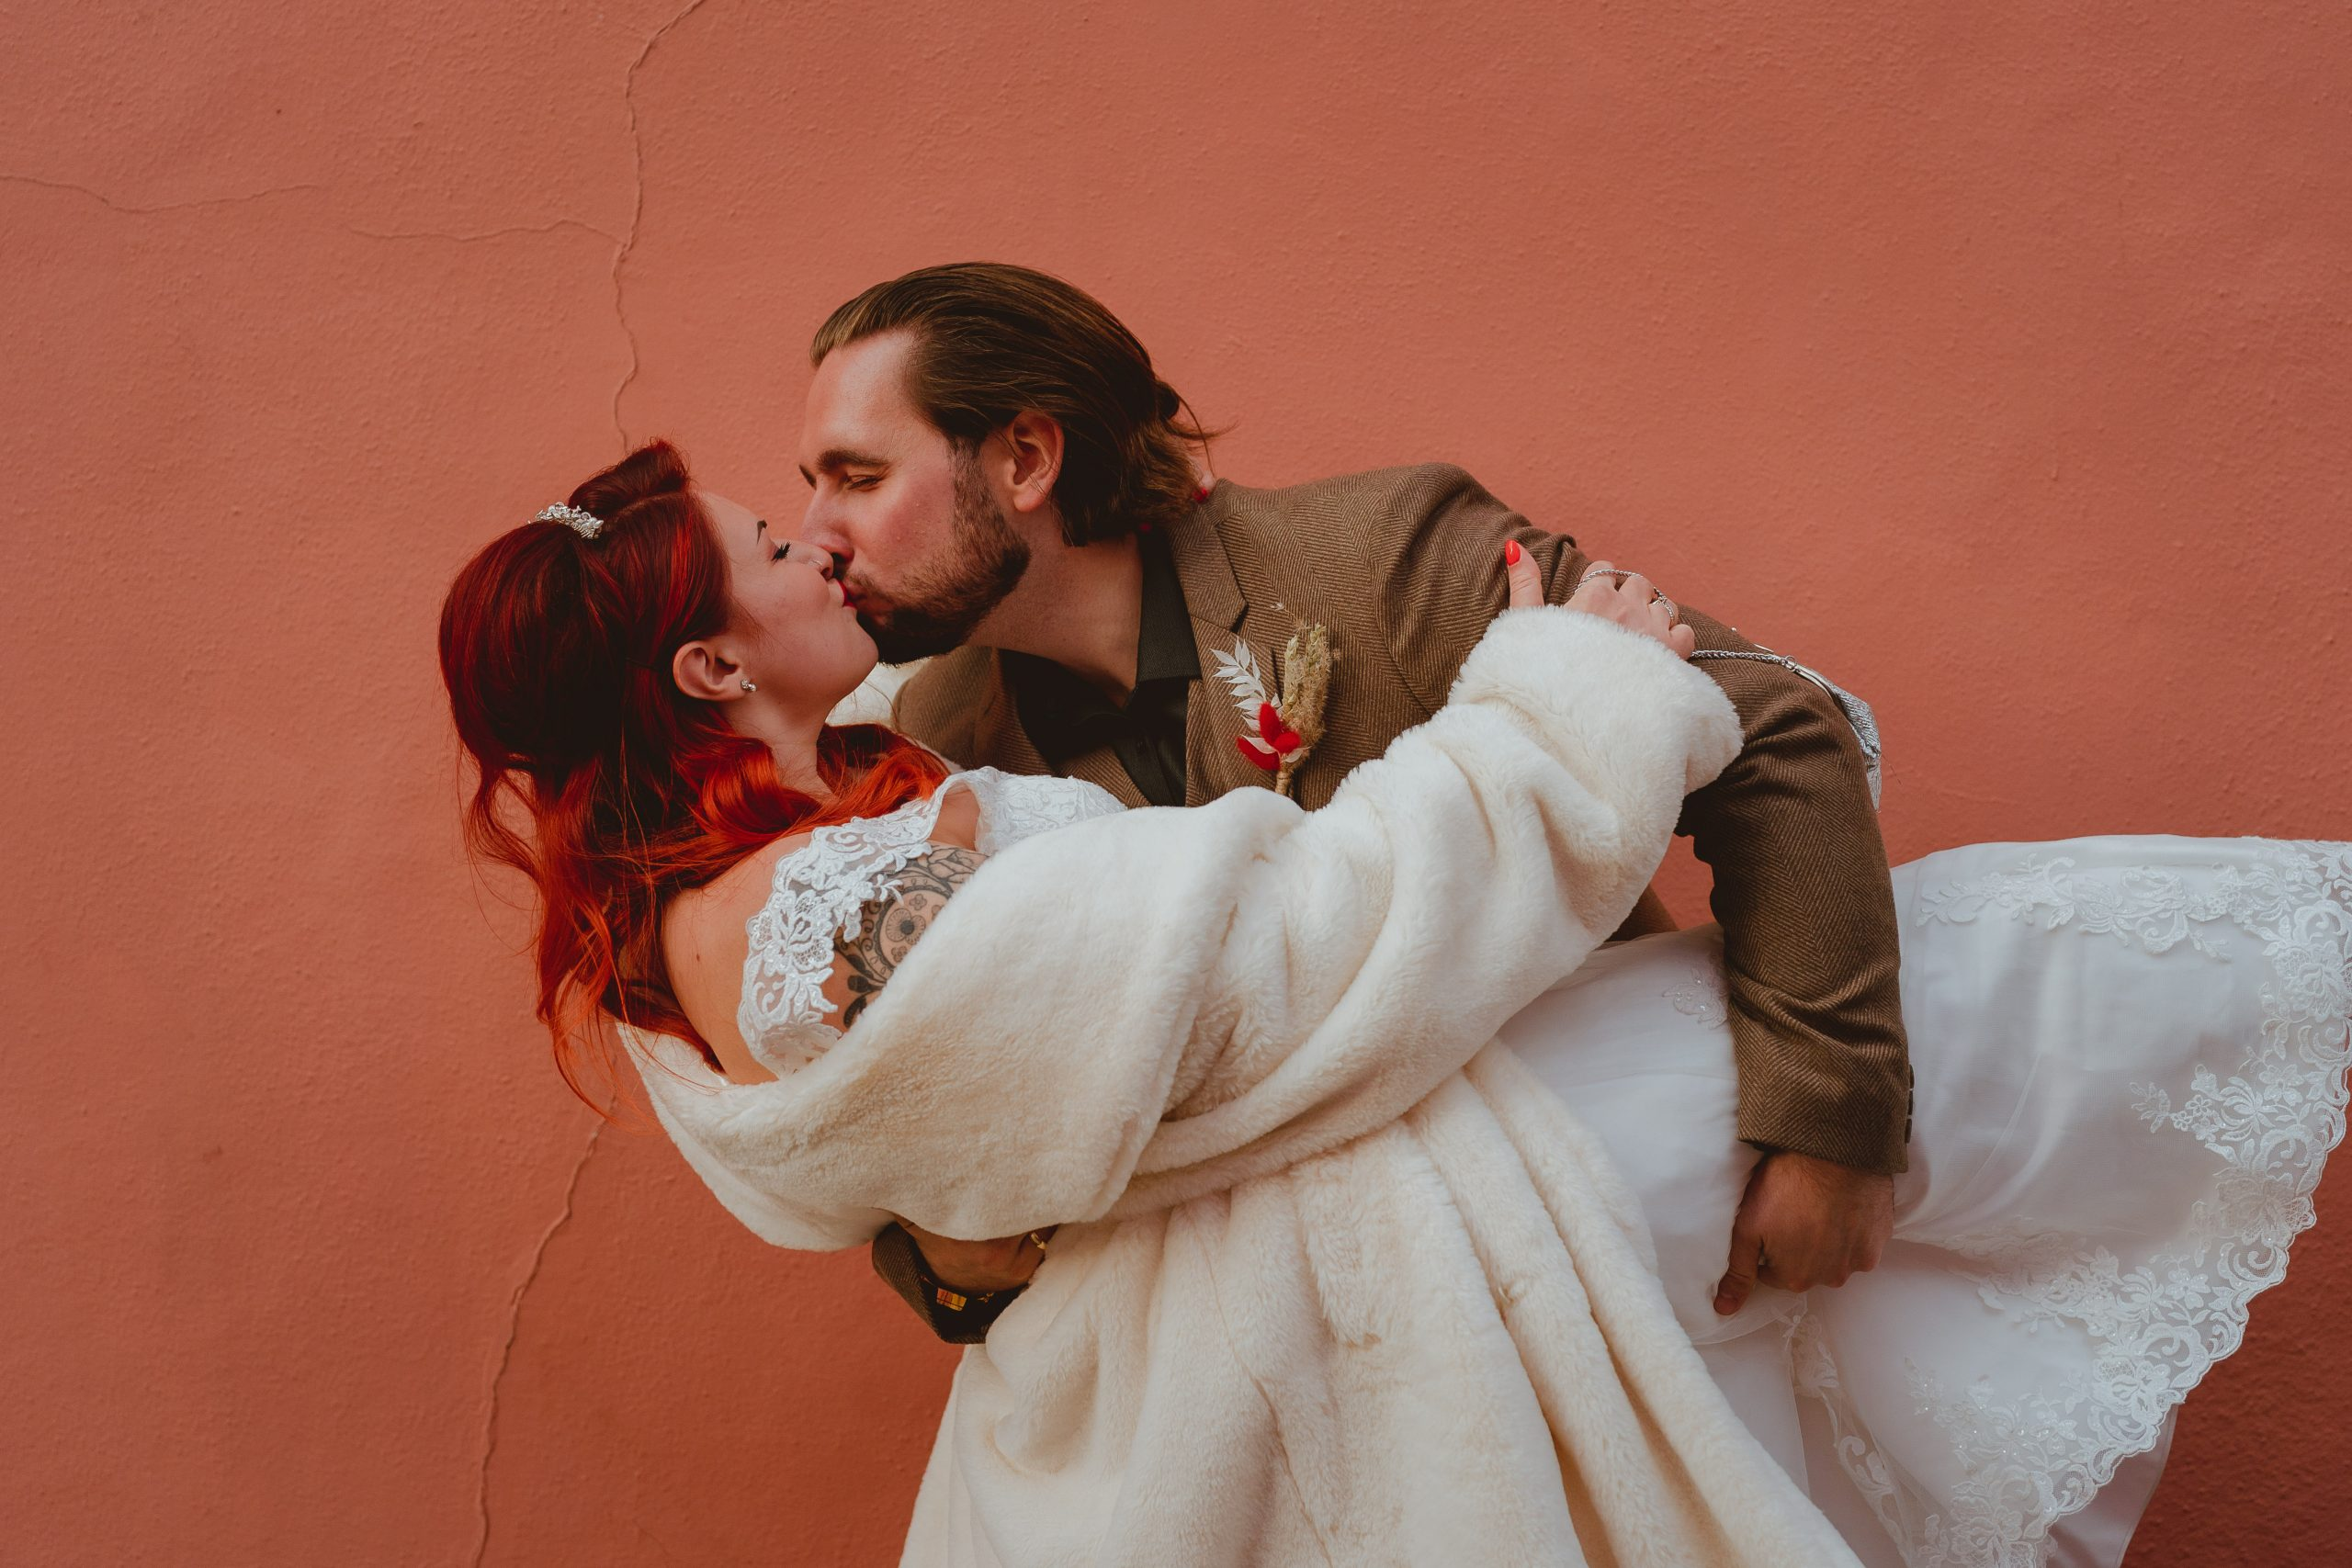 norwich elopement photographer georgia rachael